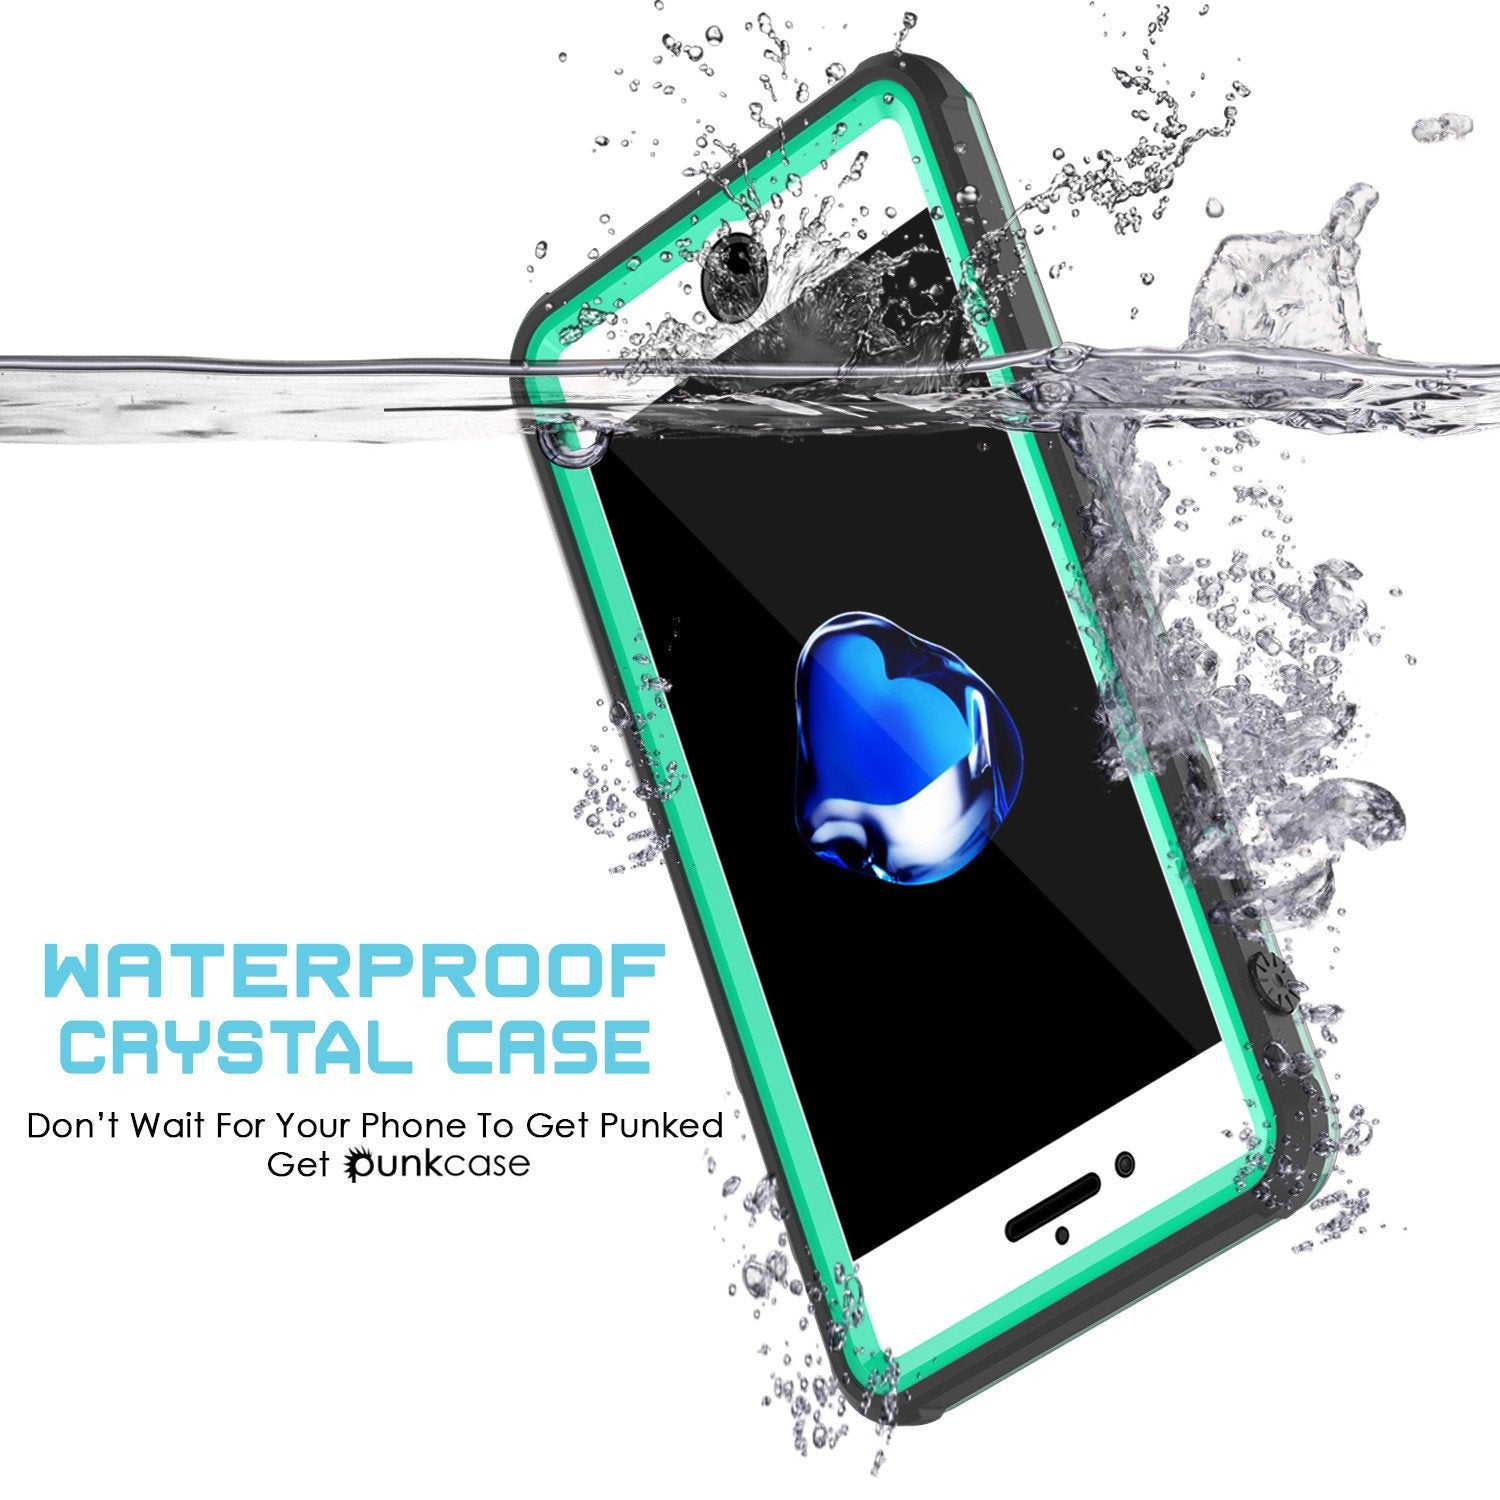 Apple iPhone 7 Waterproof Case, PUNKcase CRYSTAL Teal W/ Attached Screen Protector  | Warranty - PunkCase NZ